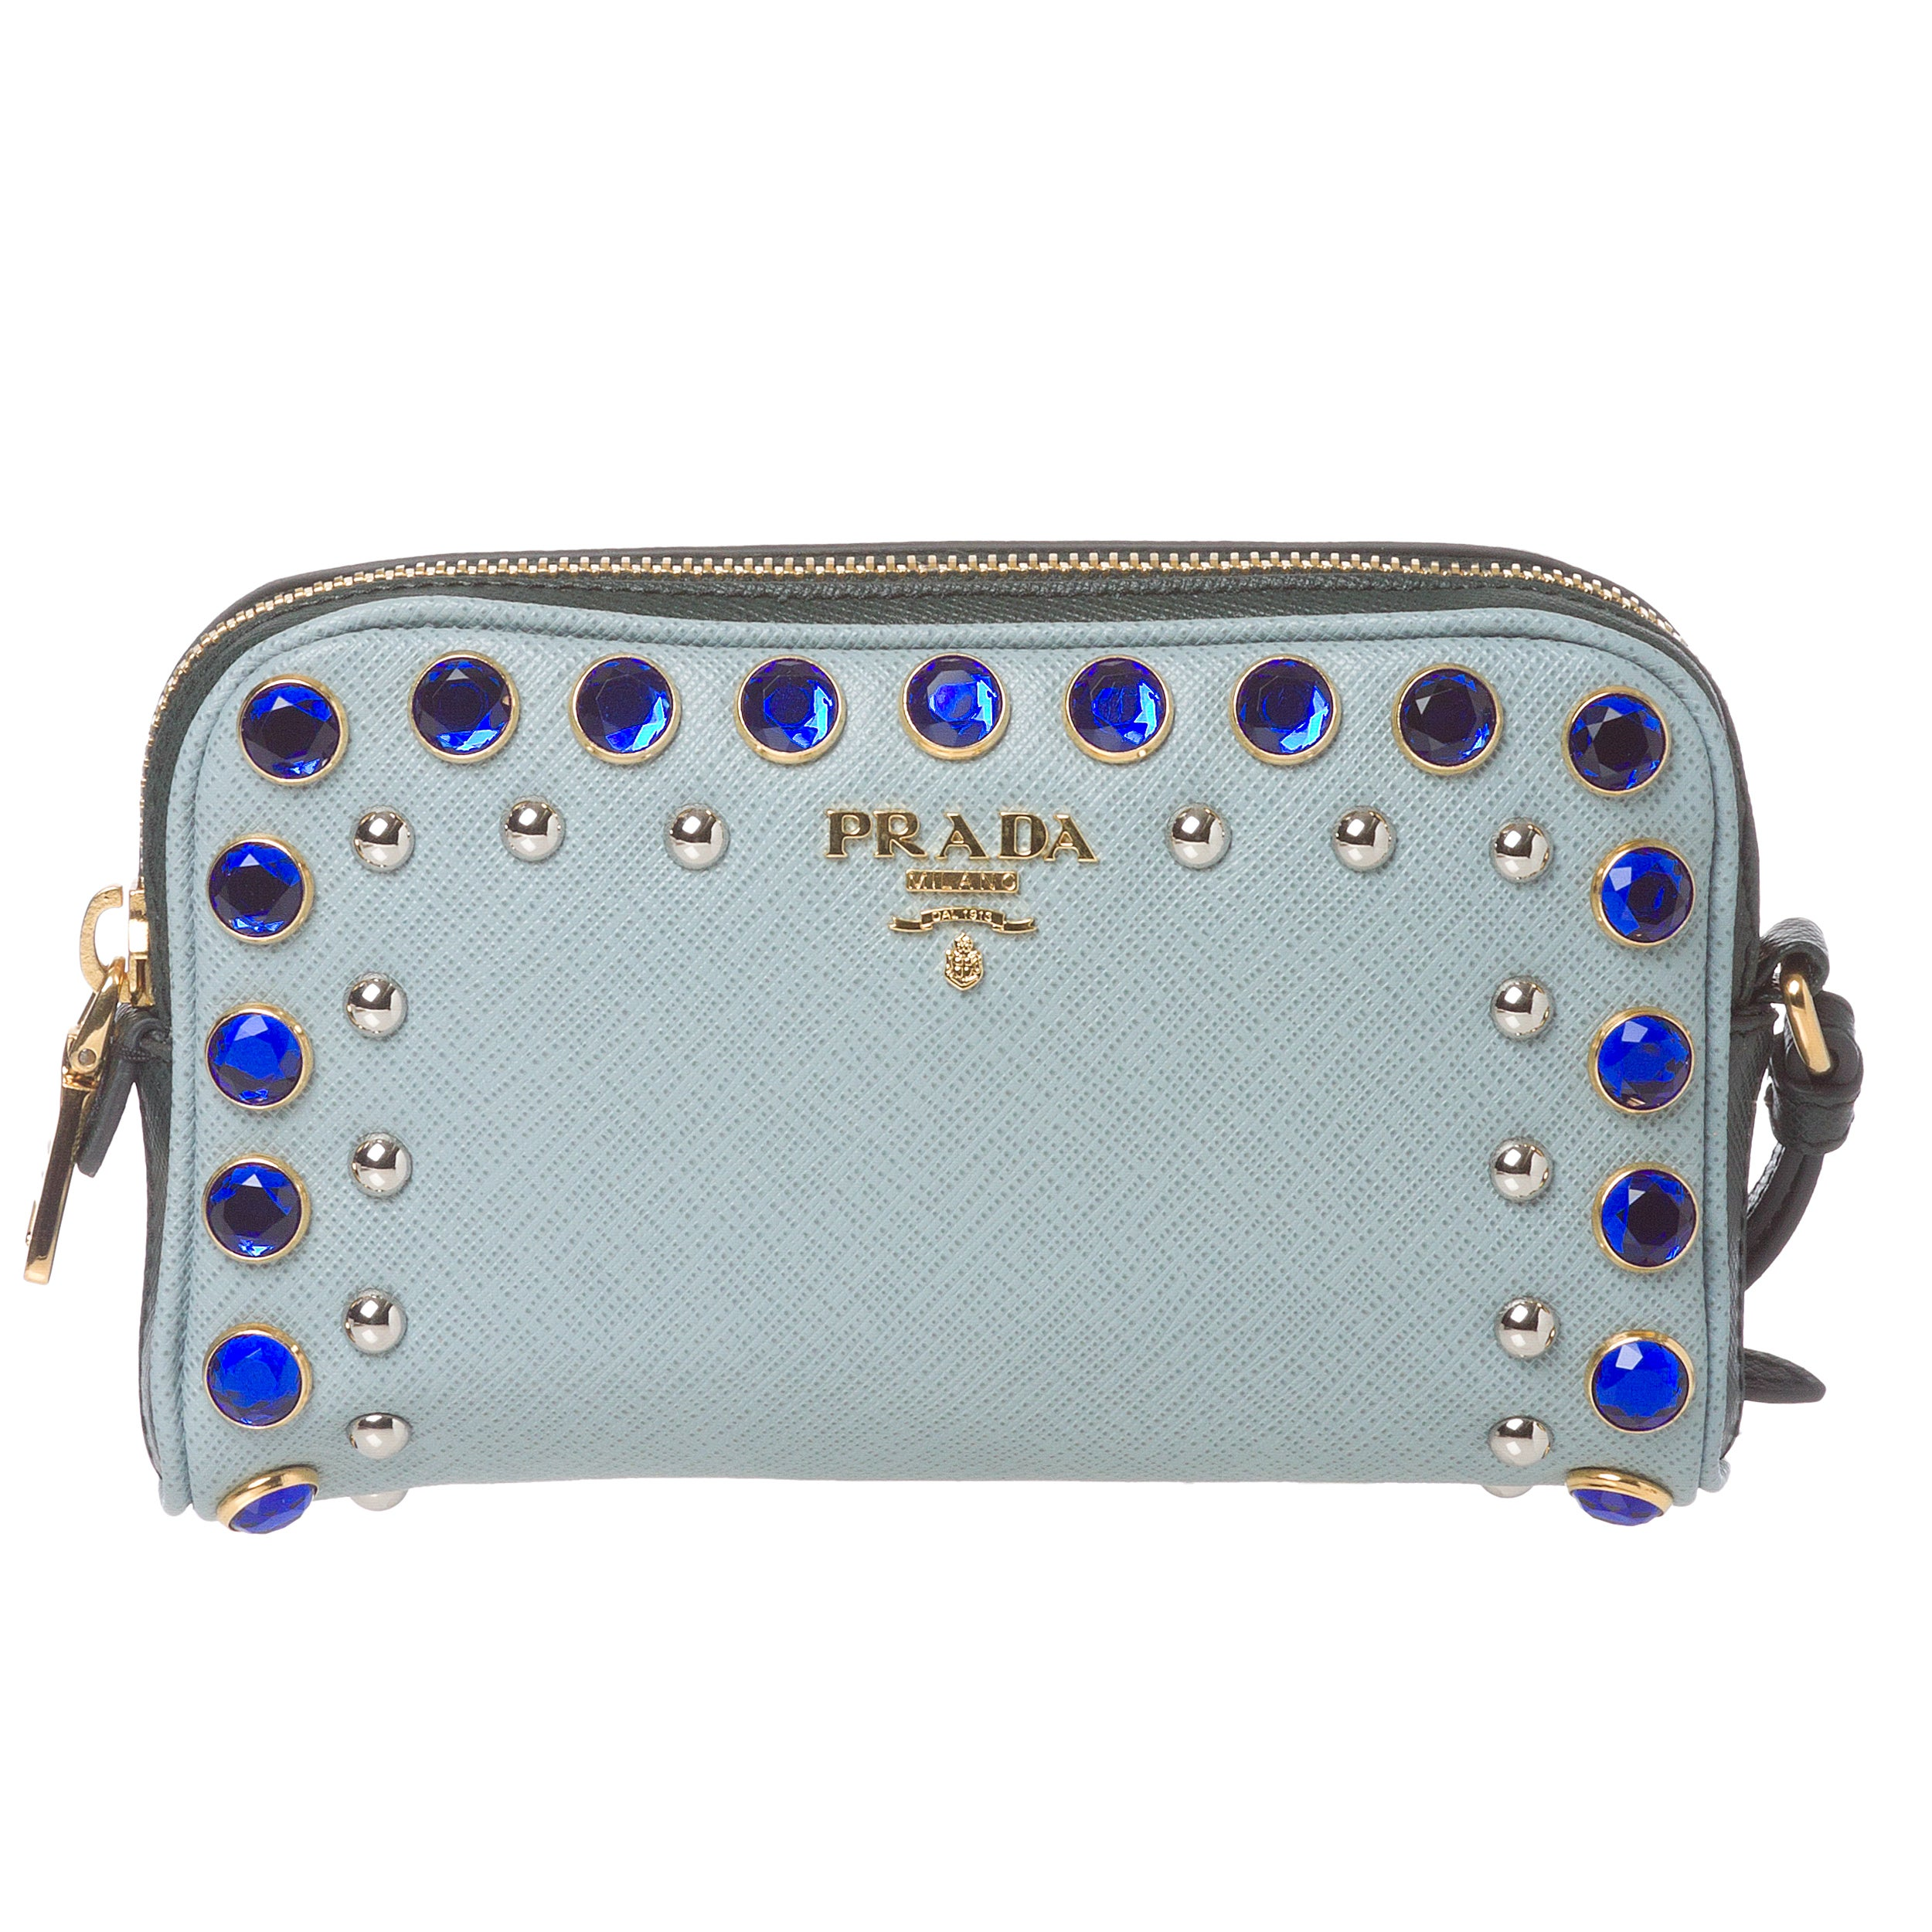 Prada Jeweled Light Blue Leather Wristlet